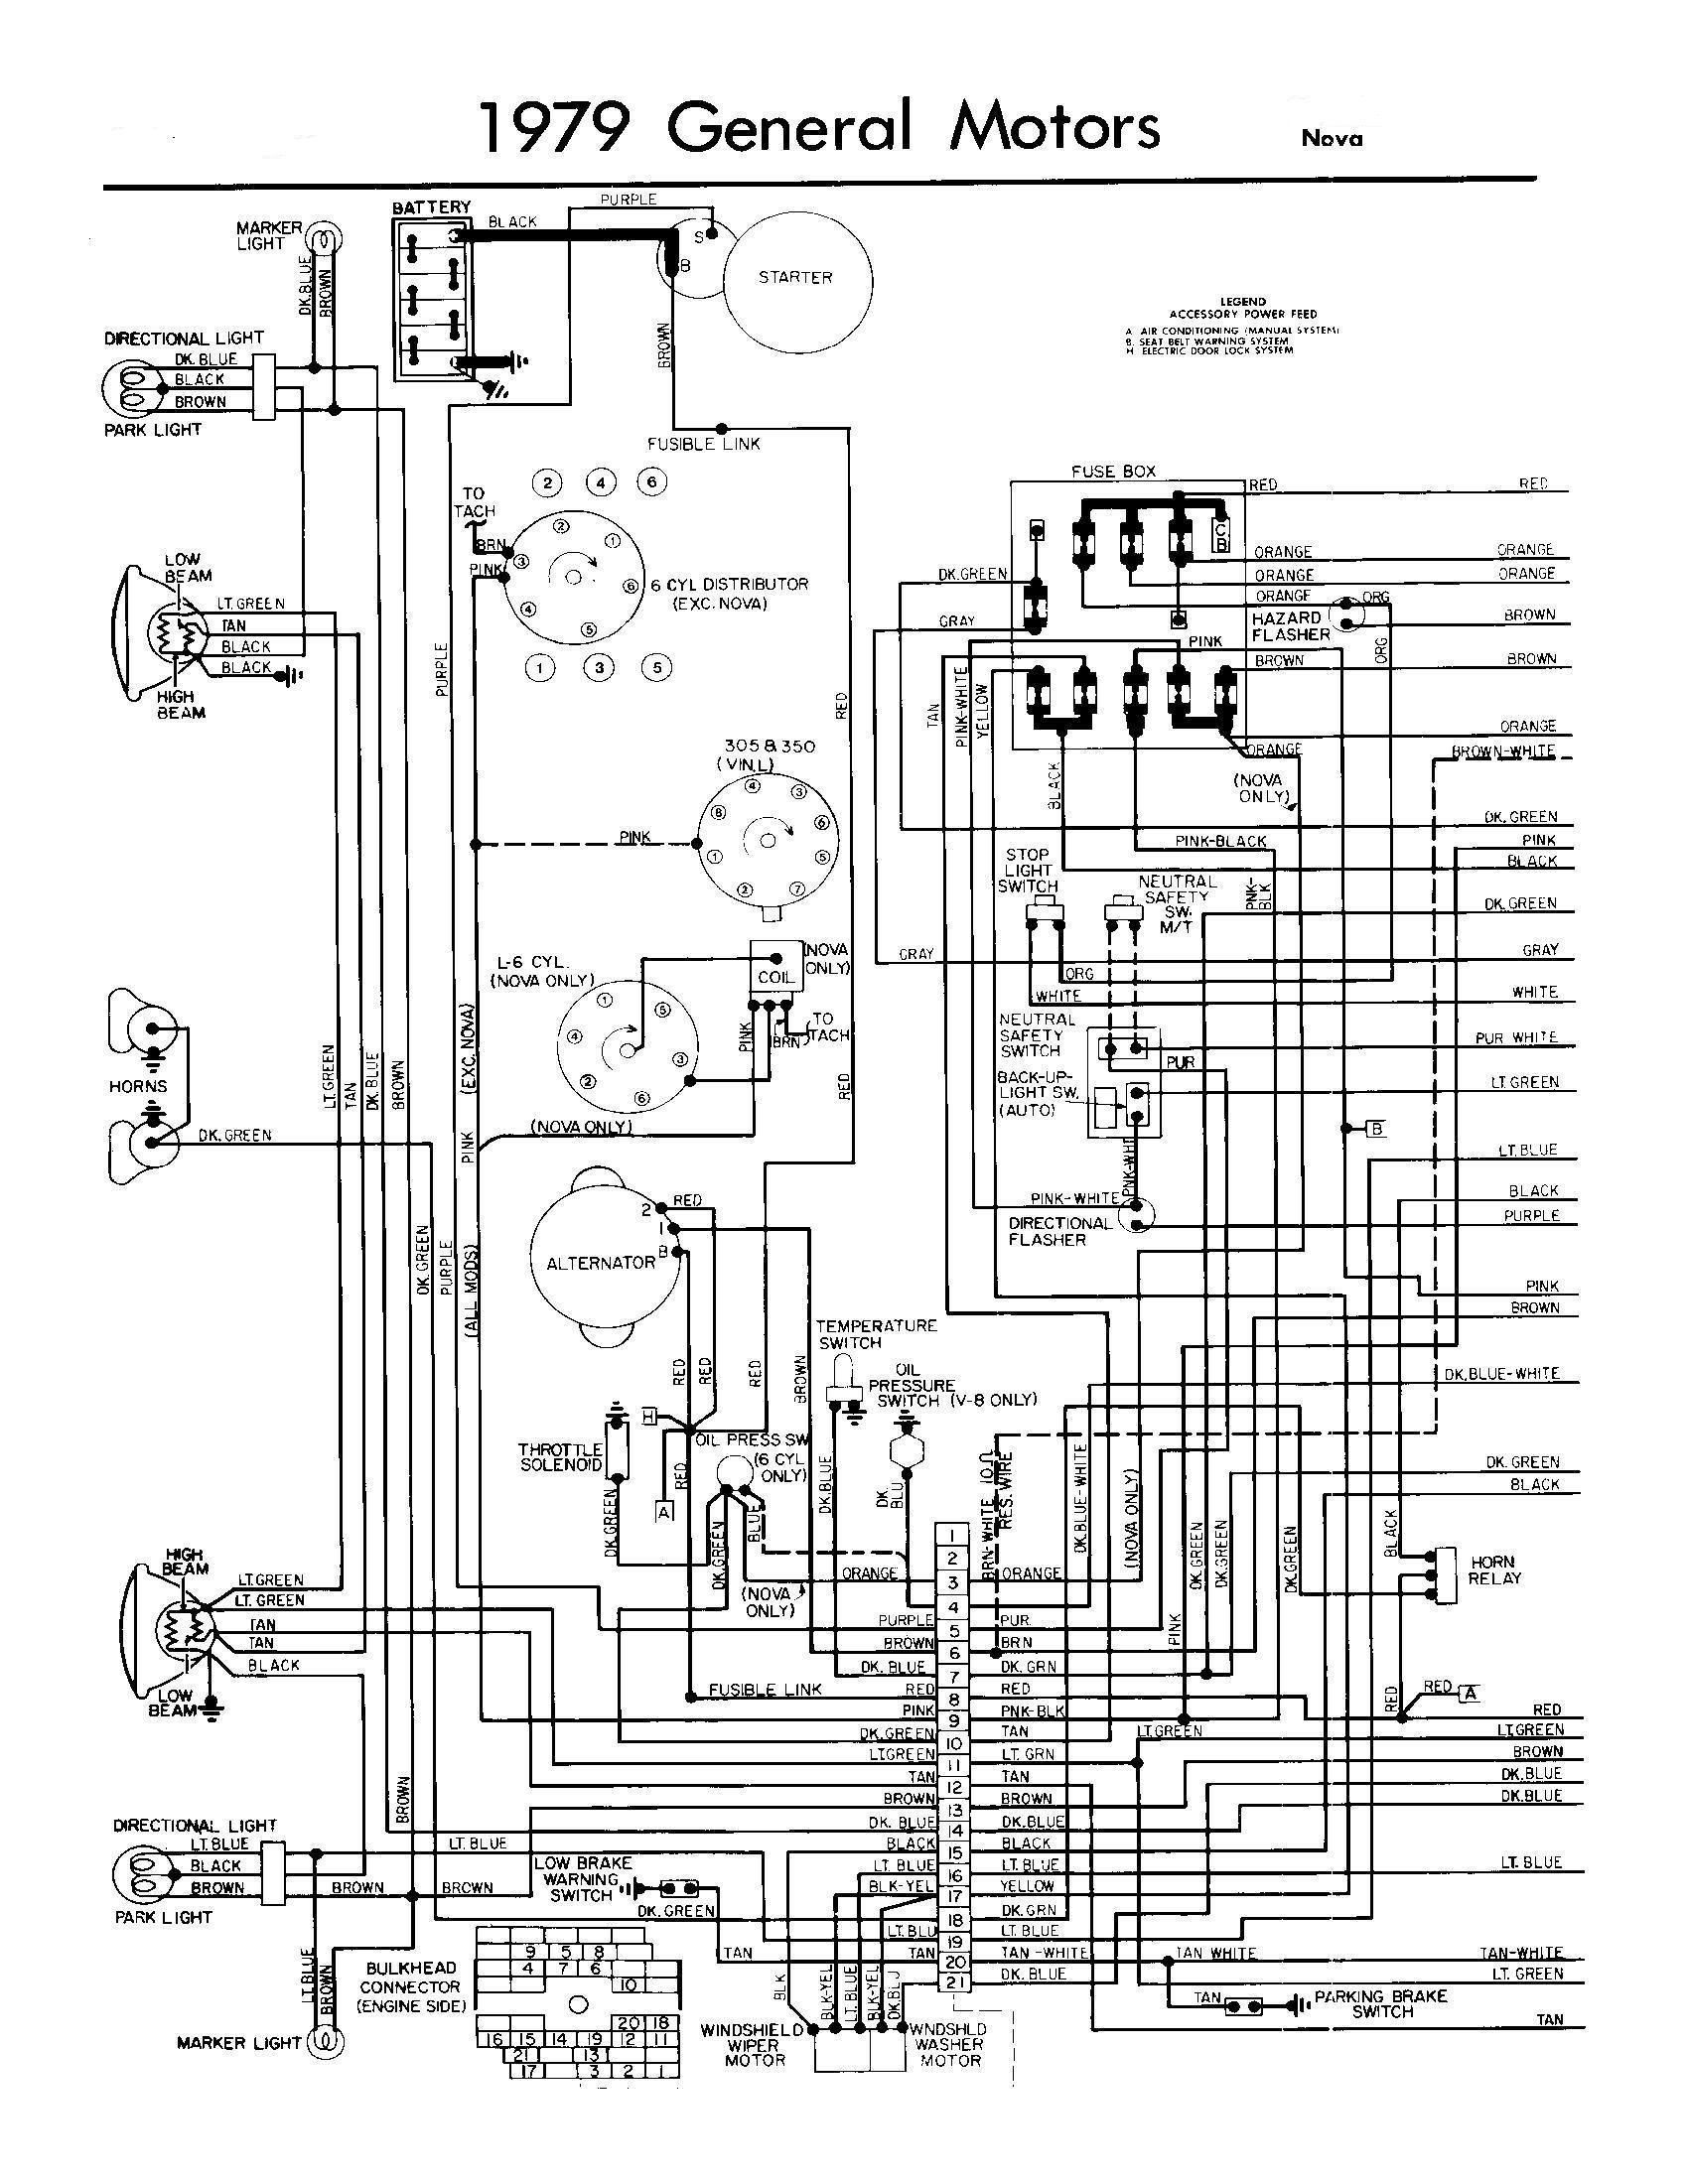 Chevy 350 Engine    Diagram      My    Wiring       DIagram